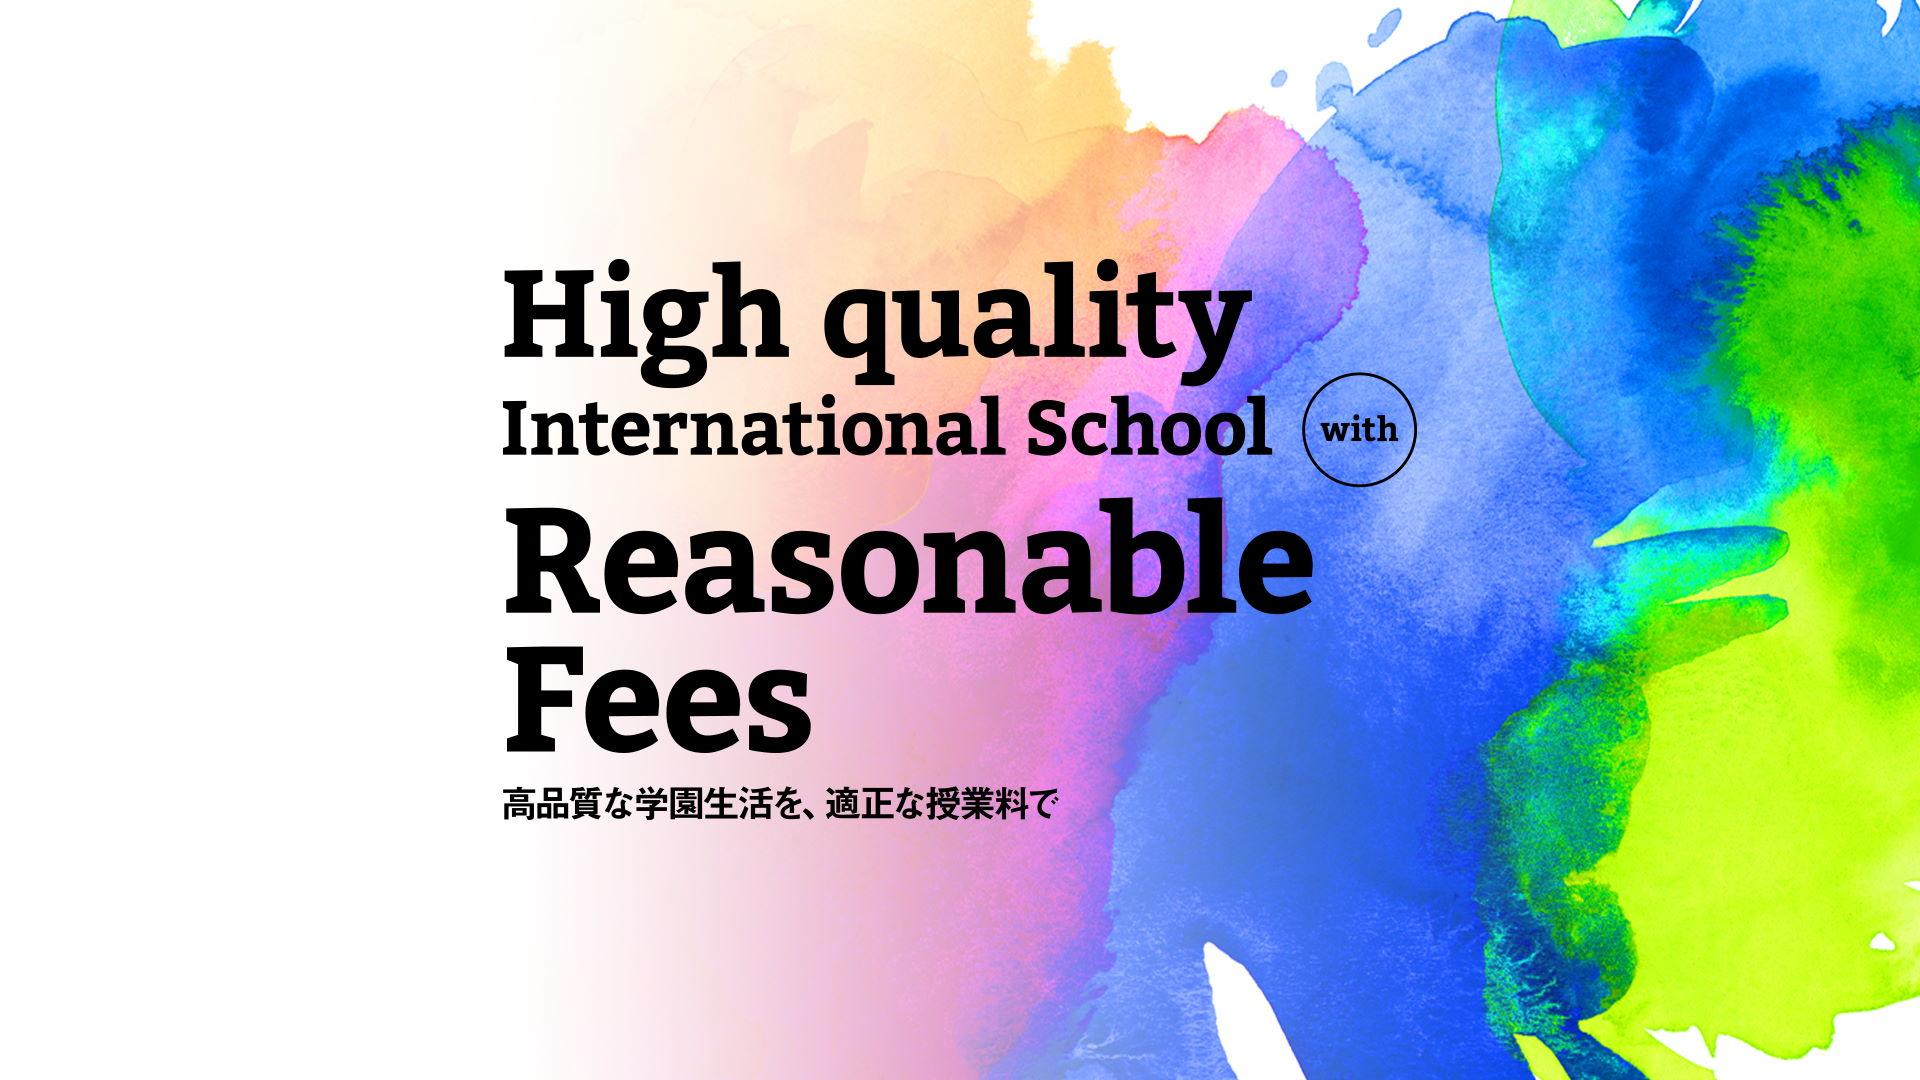 High quality International School with Reasonable Fees 高品質な学園生活を、適正な授業料で